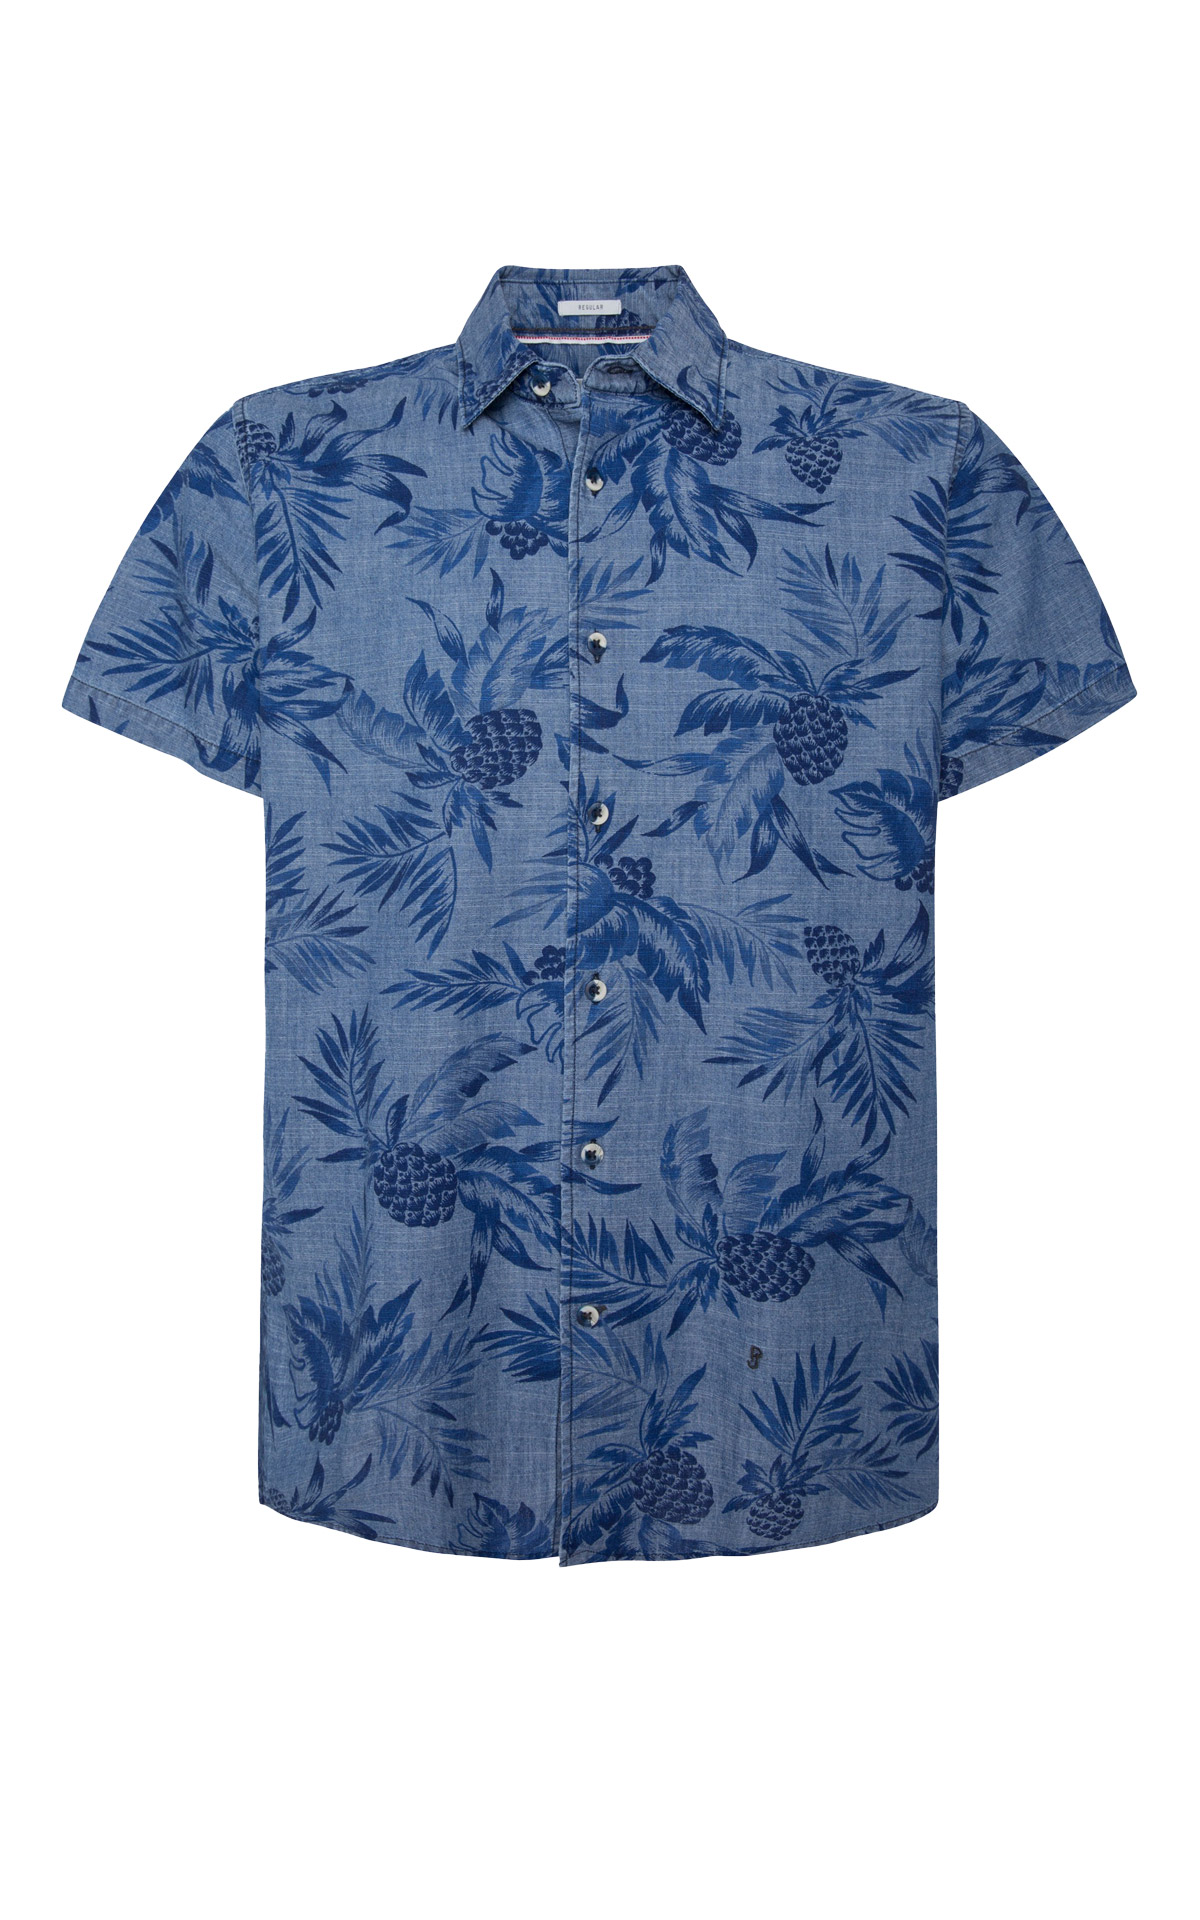 Blue floral shirt Pepe Jeans